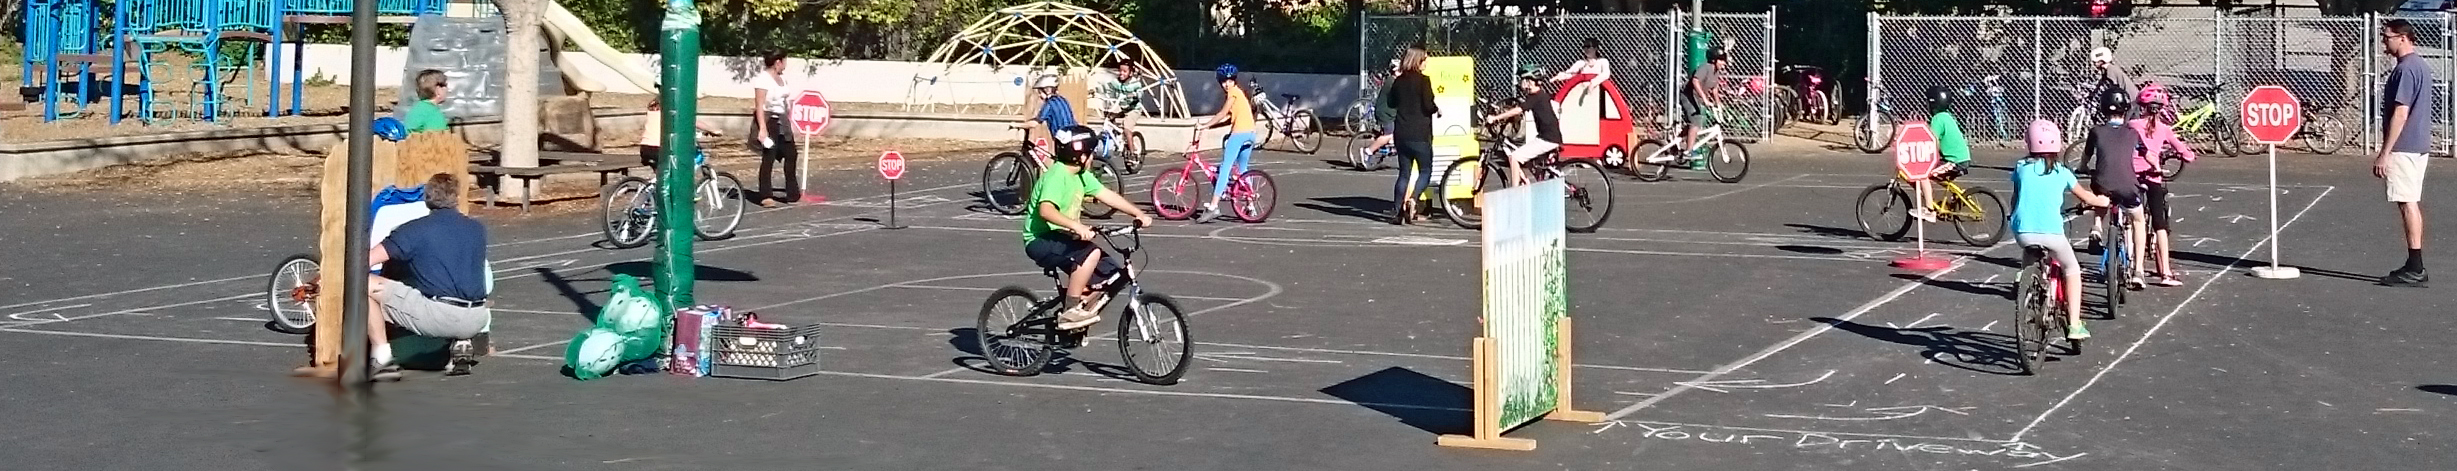 A Full Bike Rodeo In Action!